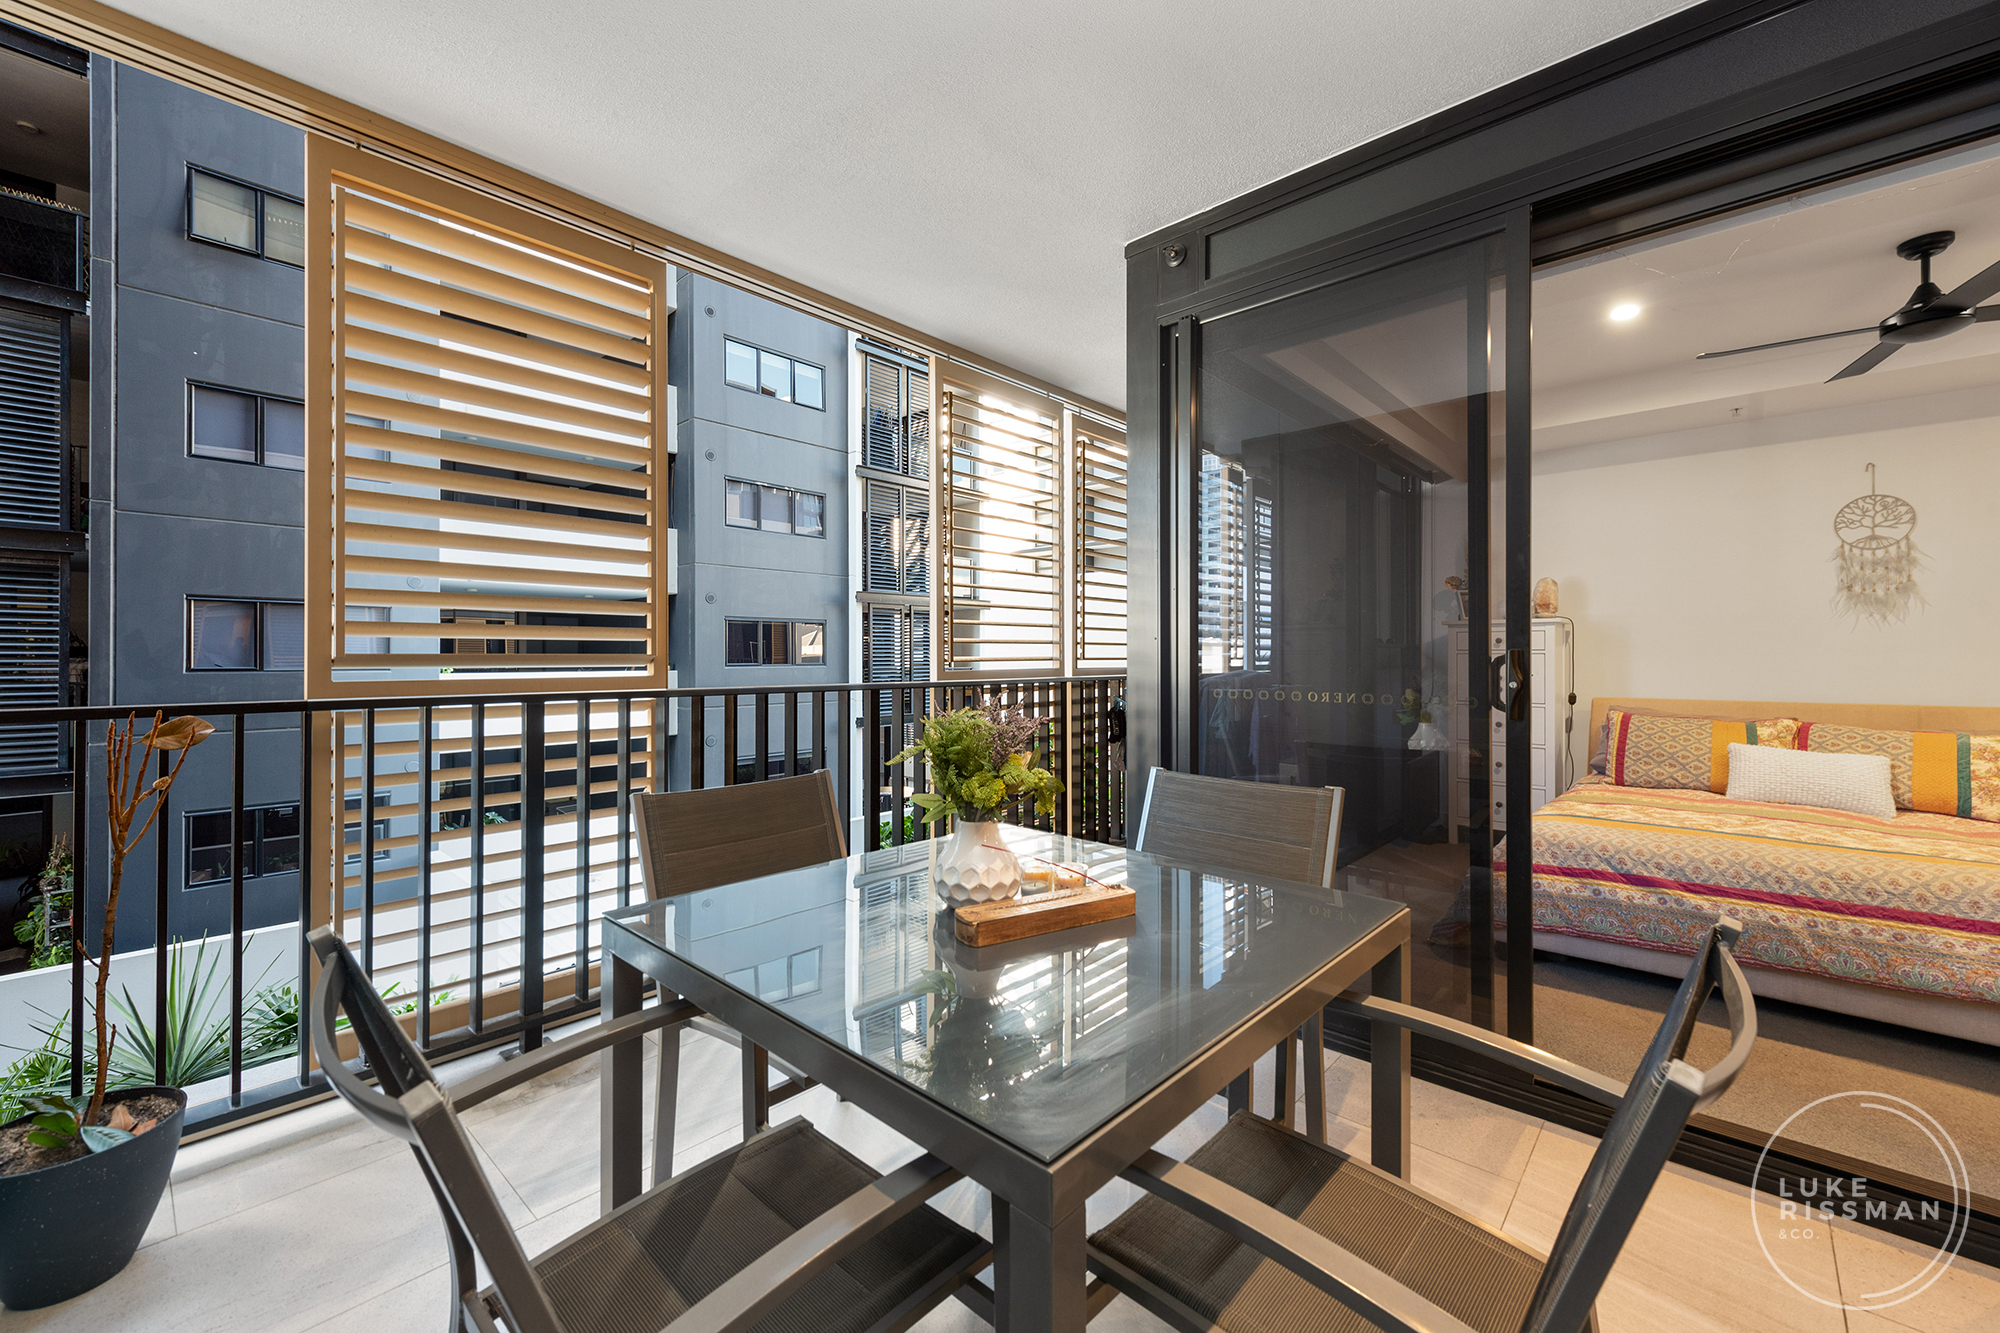 Idyllic oasis for inner city lifestyle seekers